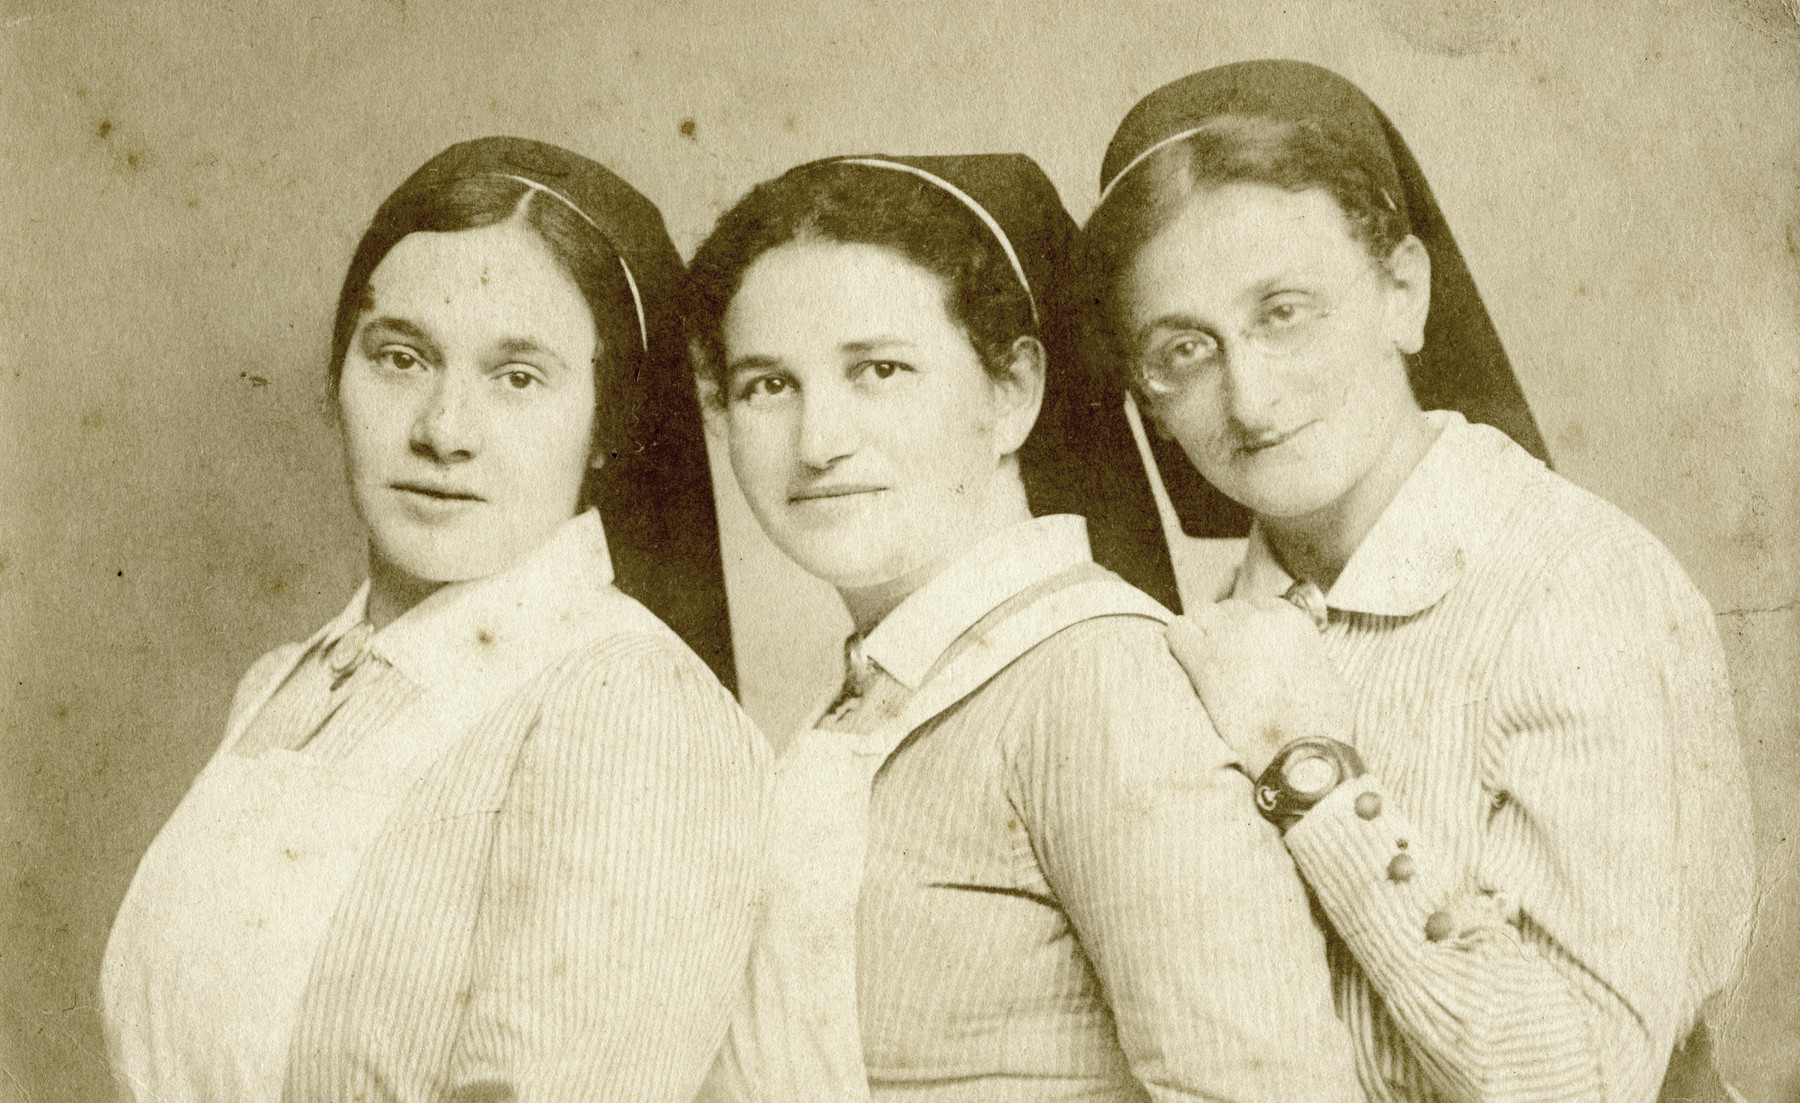 Studio portrait of three female staff members of the Beith Ahawah Children's Home.  The director, Beate Berger, is in the center.